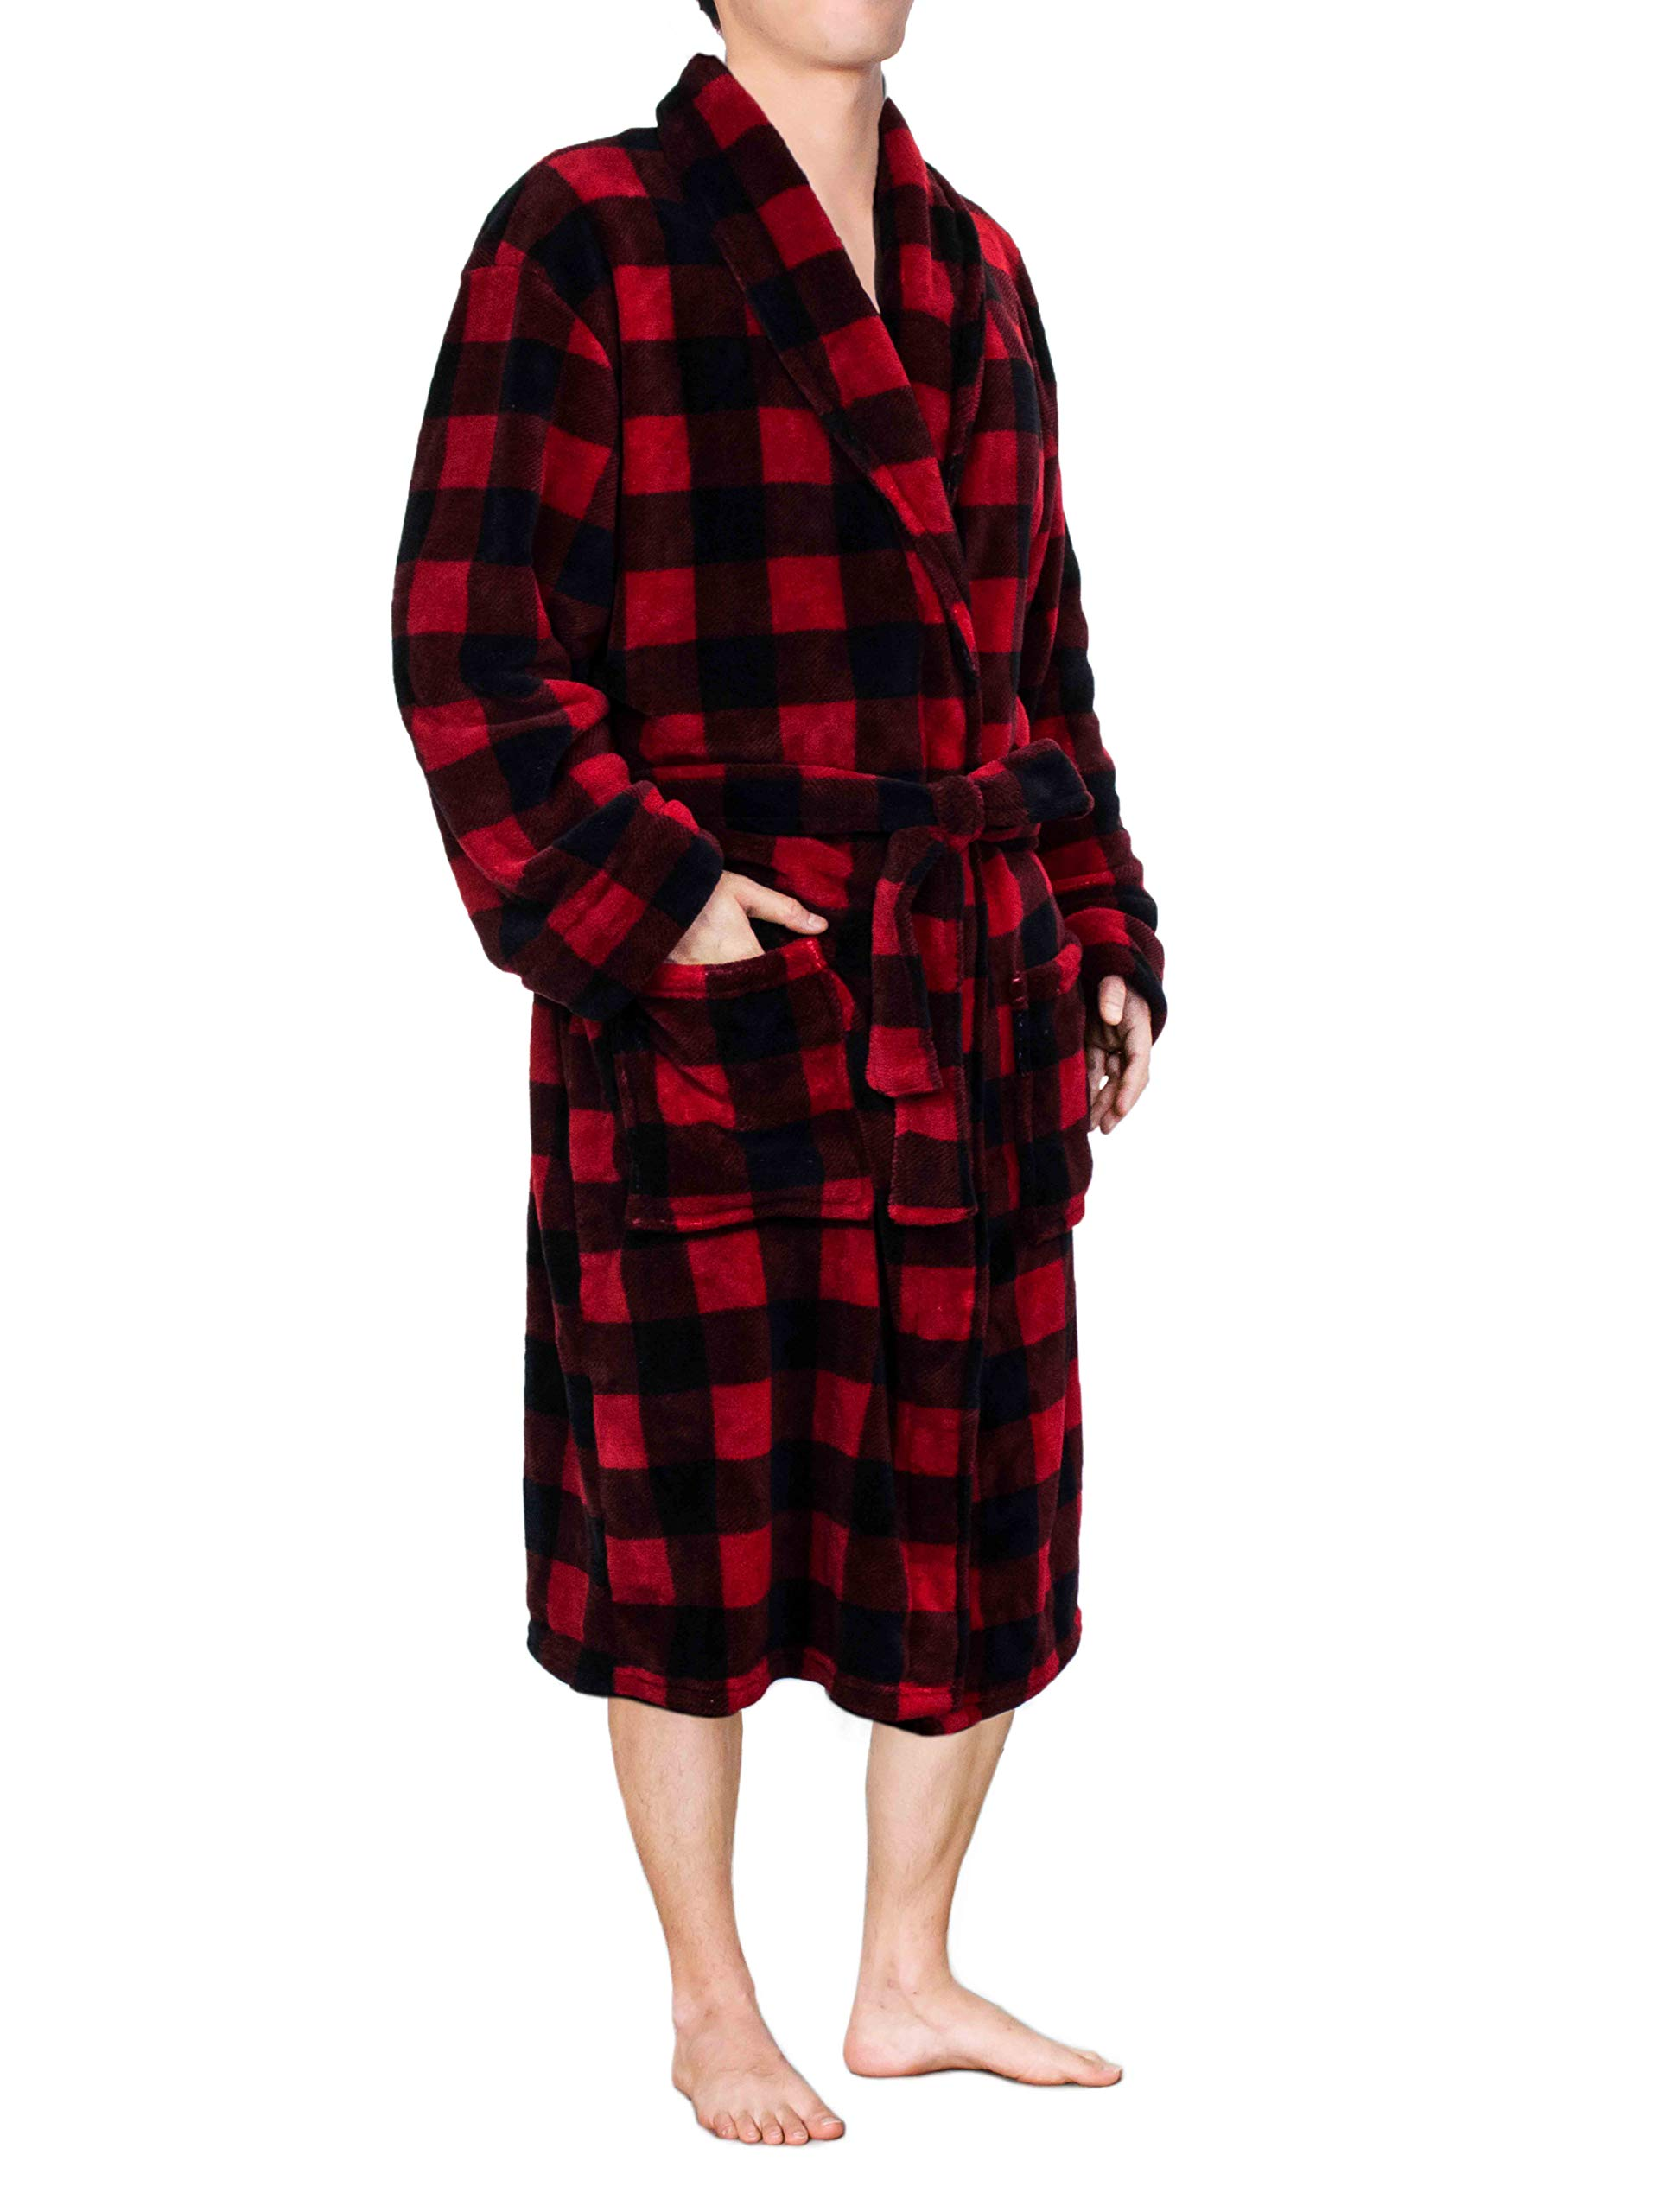 Image of Fleece Red Plaid Bath Robe for Men - See More Colors